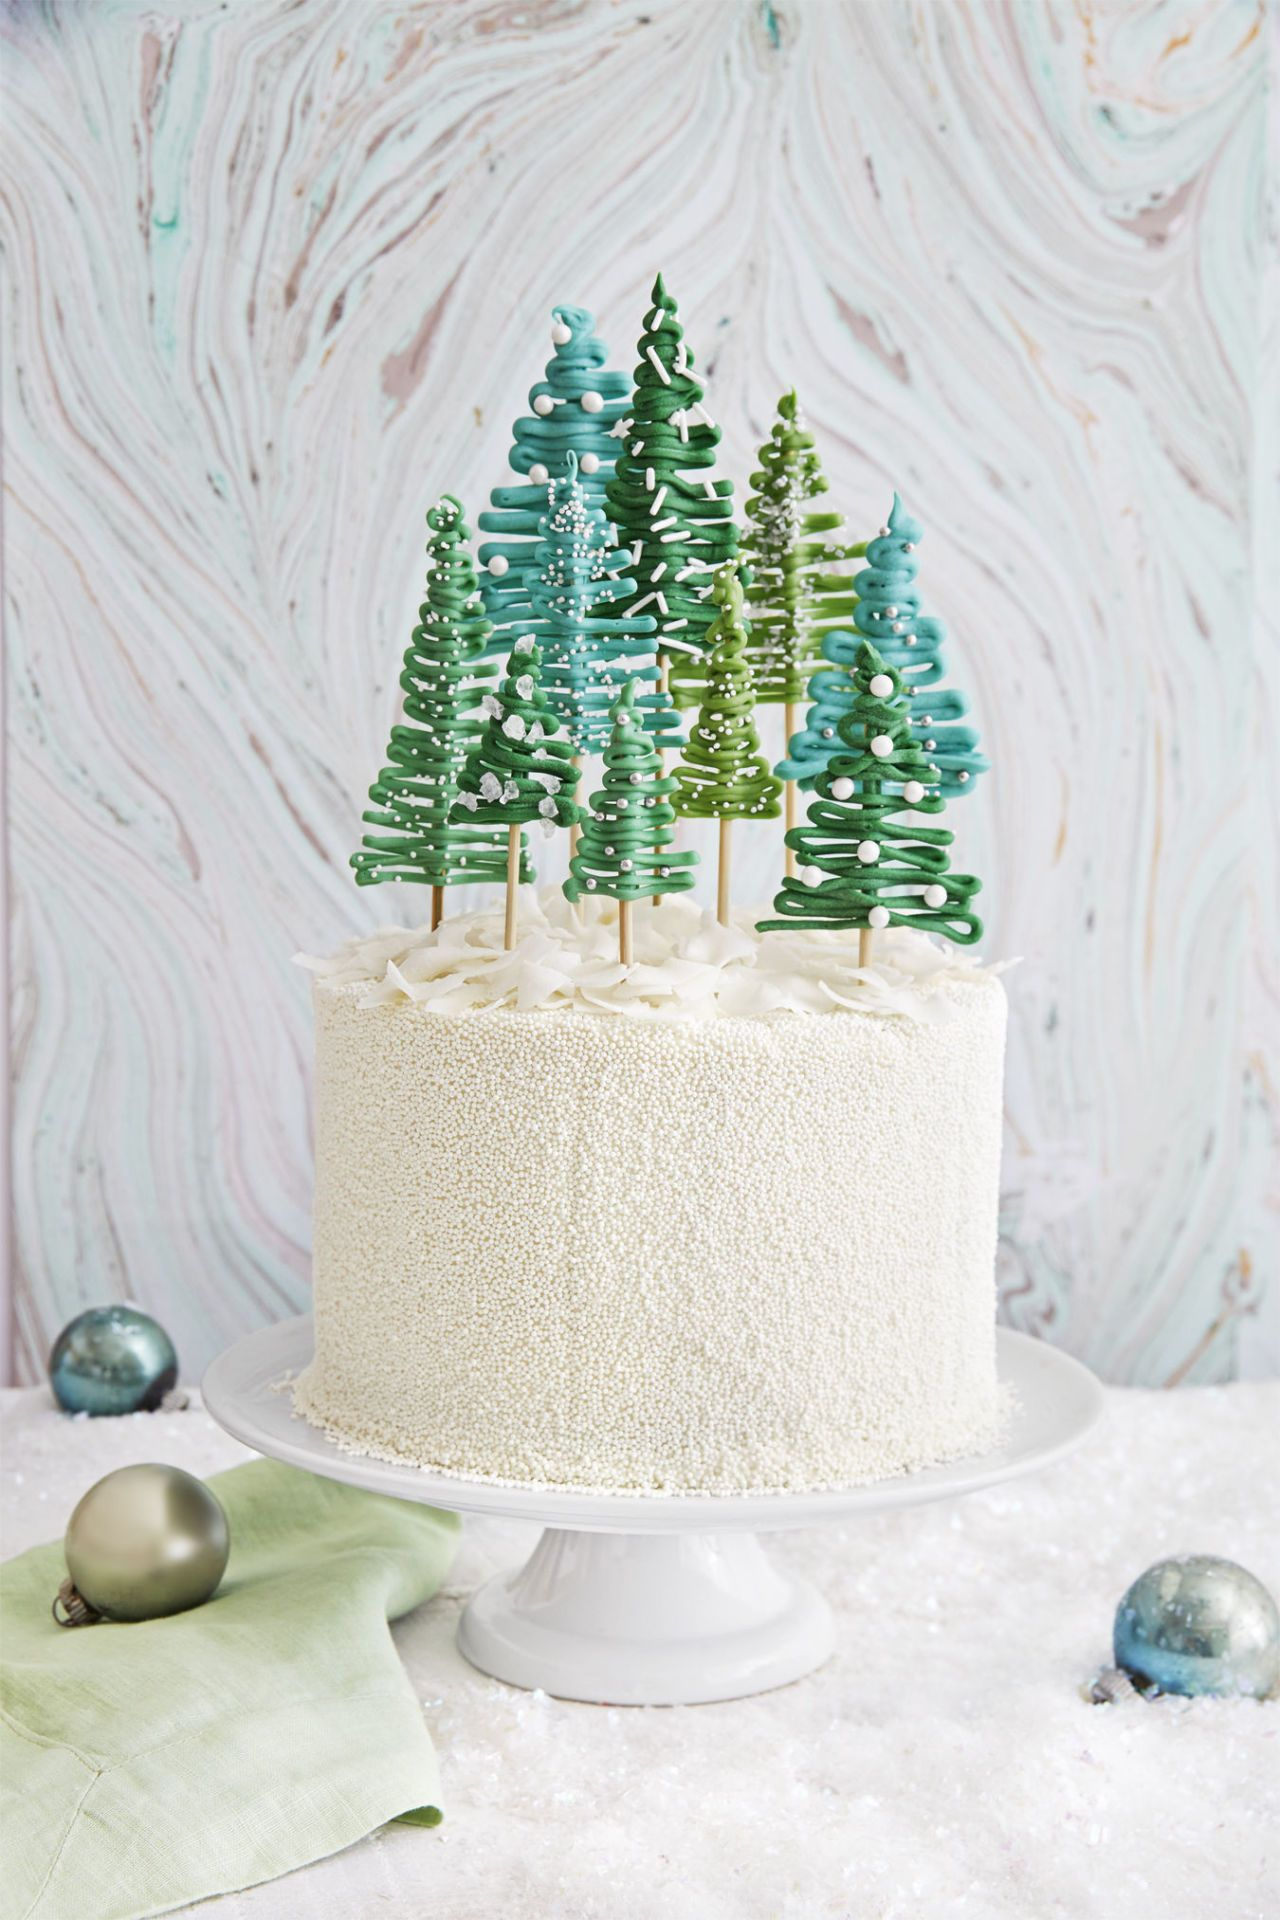 29 of the Most Beautiful Christmas Cakes Forest cake